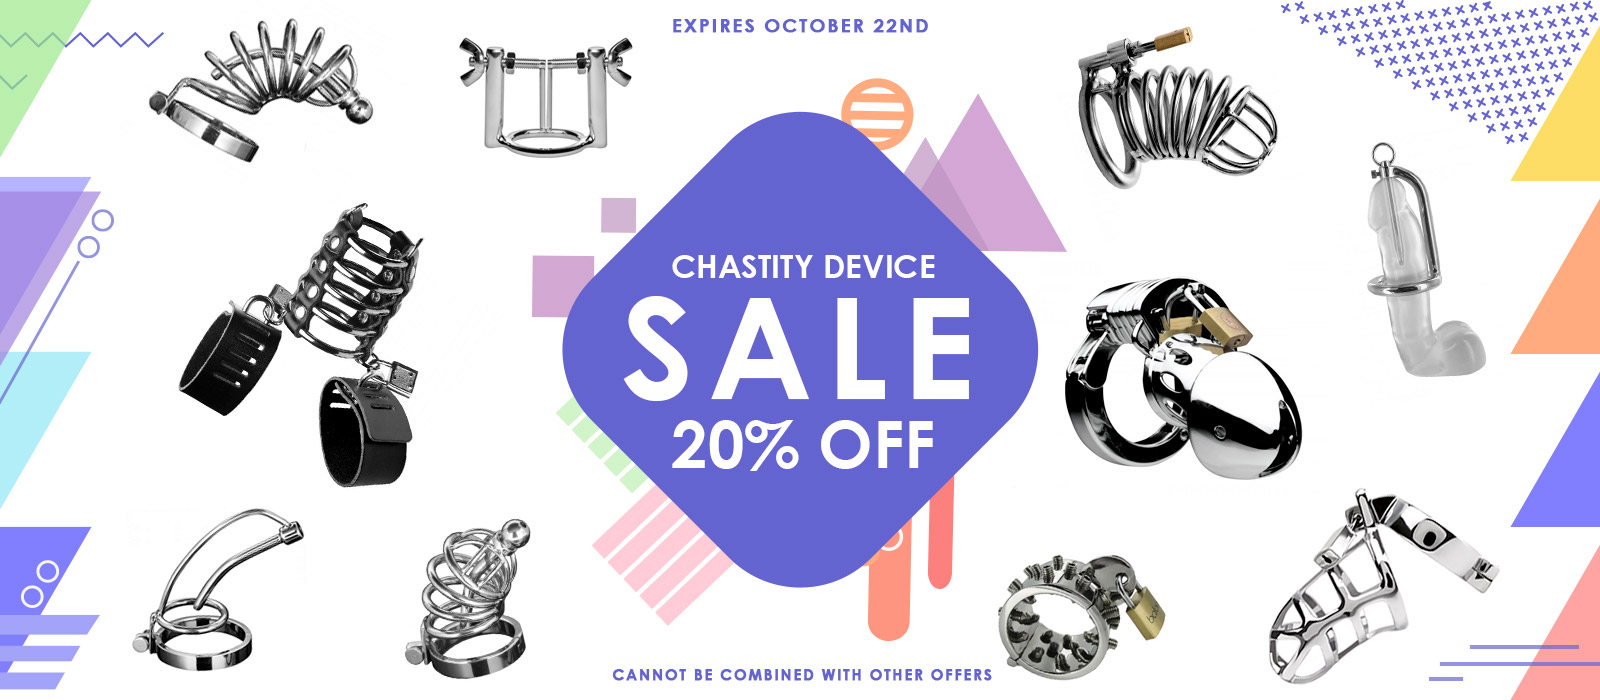 Chastity Device Sale 2% off